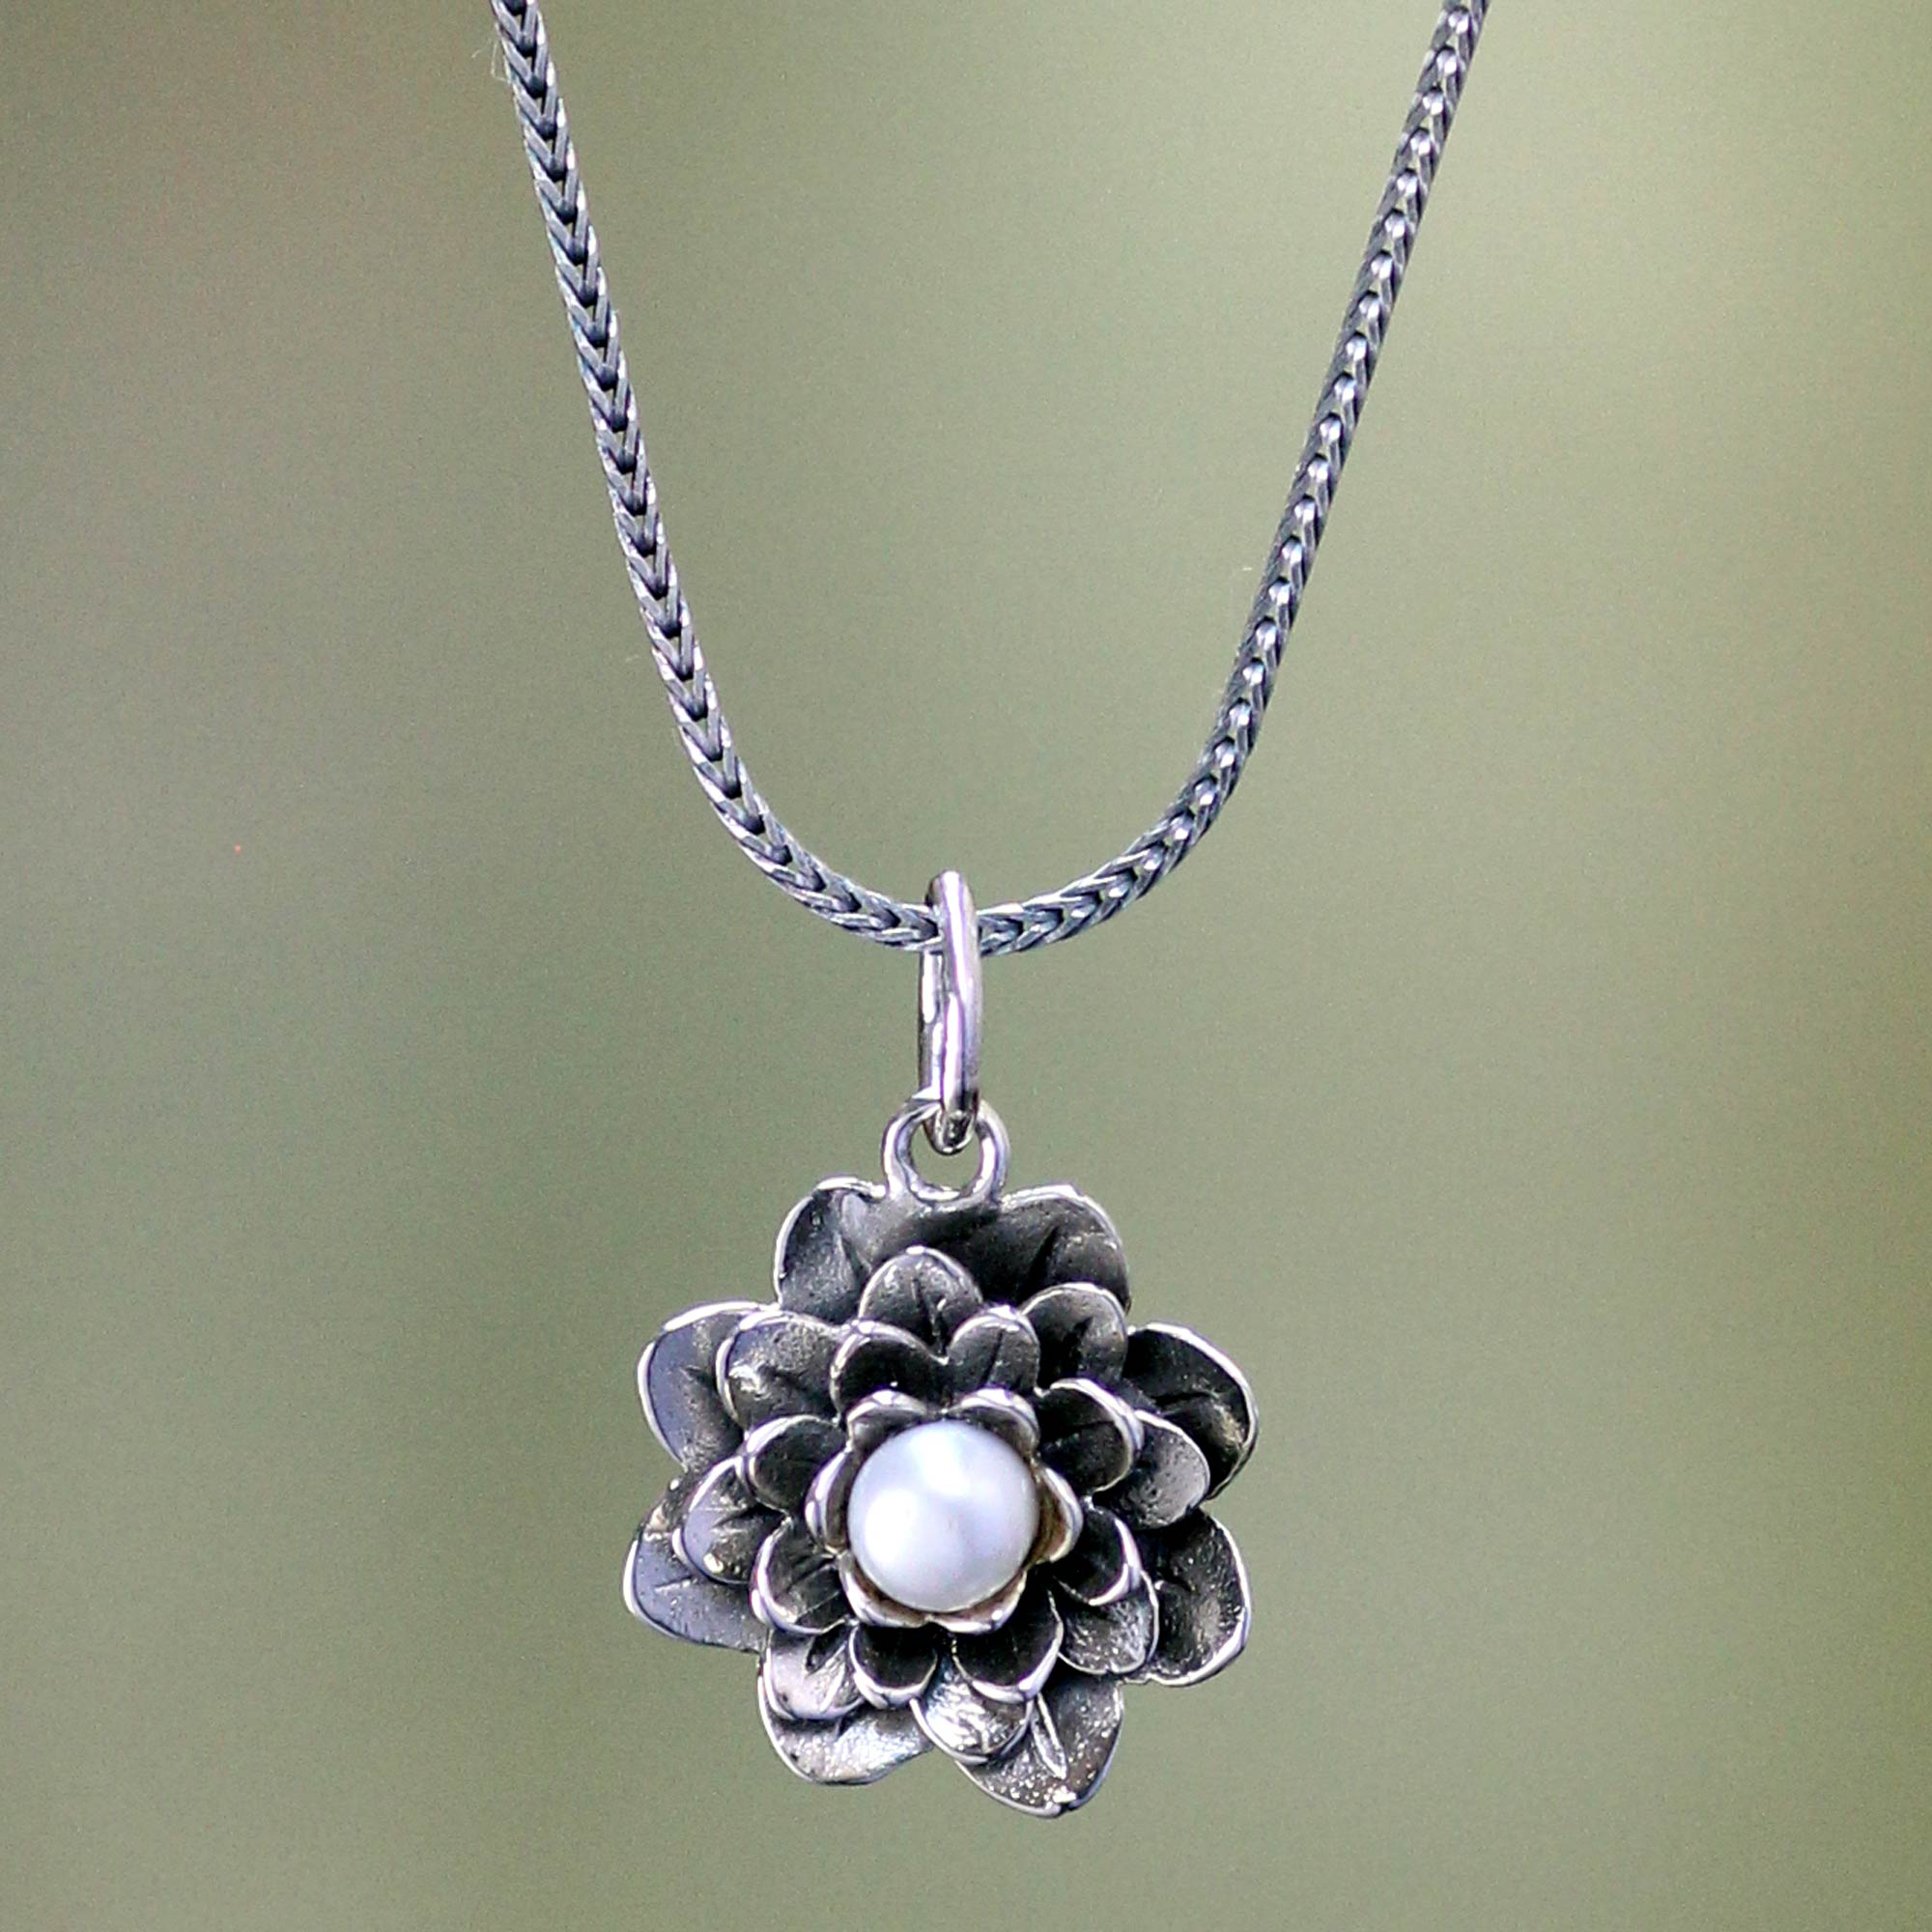 Sterling silver and pearl pendant necklace sacred white lotus sterling silver and pearl pendant necklace sacred white lotus novica mozeypictures Images